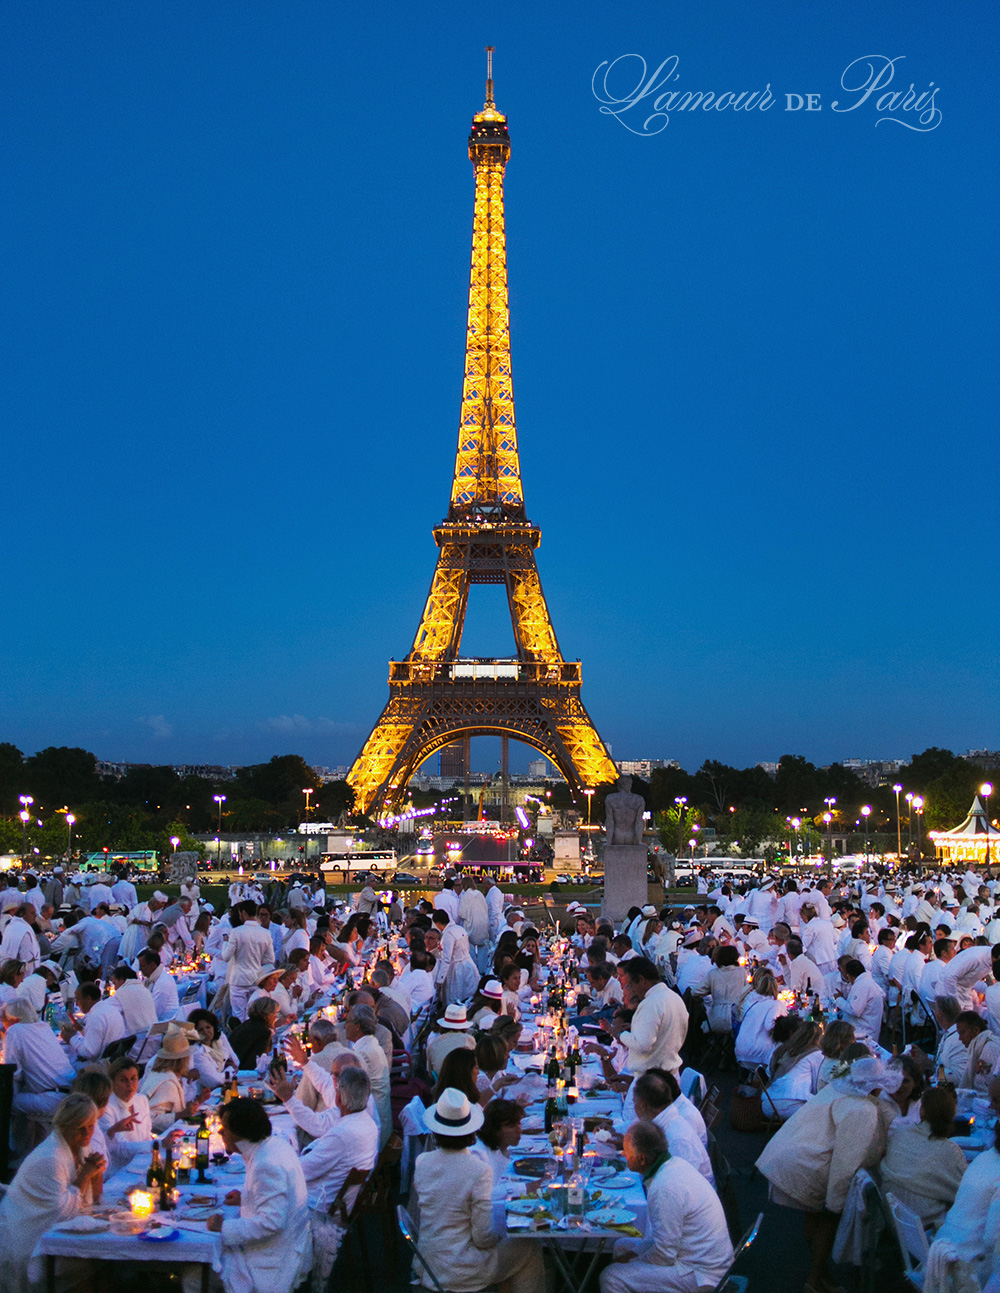 Diner en Blanc, also known as Diner in White, a top secret invitiation-only flash mob in Paris, France where 11,000 people dressed entirely in white clothes spontaneously set up tables and chairs in front of historic landmarks one night a year. The 2013 Diner en blanc, held on July 13, took place in the Louvre courtyard and by the Trocadero fountains in front of the Eiffel Tower. Photographed by Paris wedding and portrait photographer Stacy Reeves for vacation planning blog L